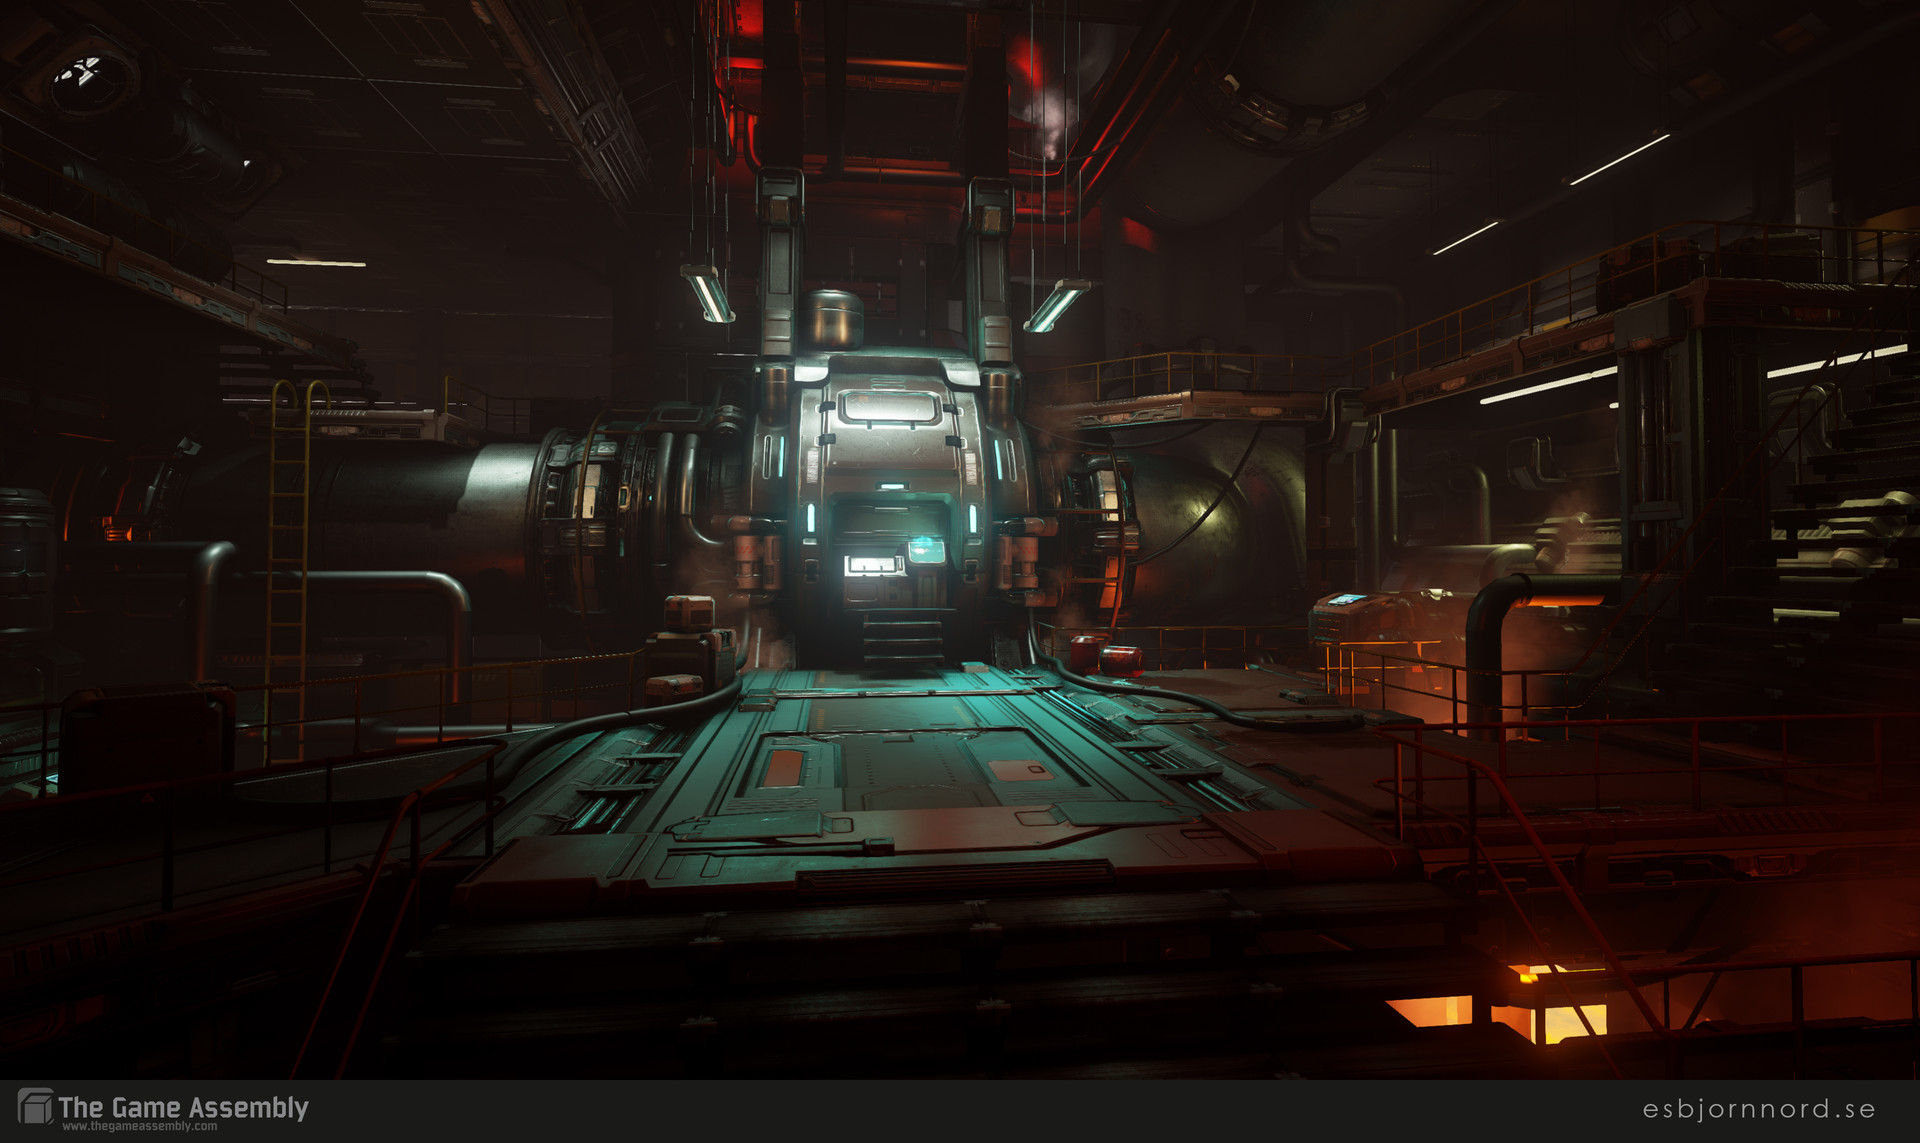 DOOM-inspired industrial sci-fi environment showcased in